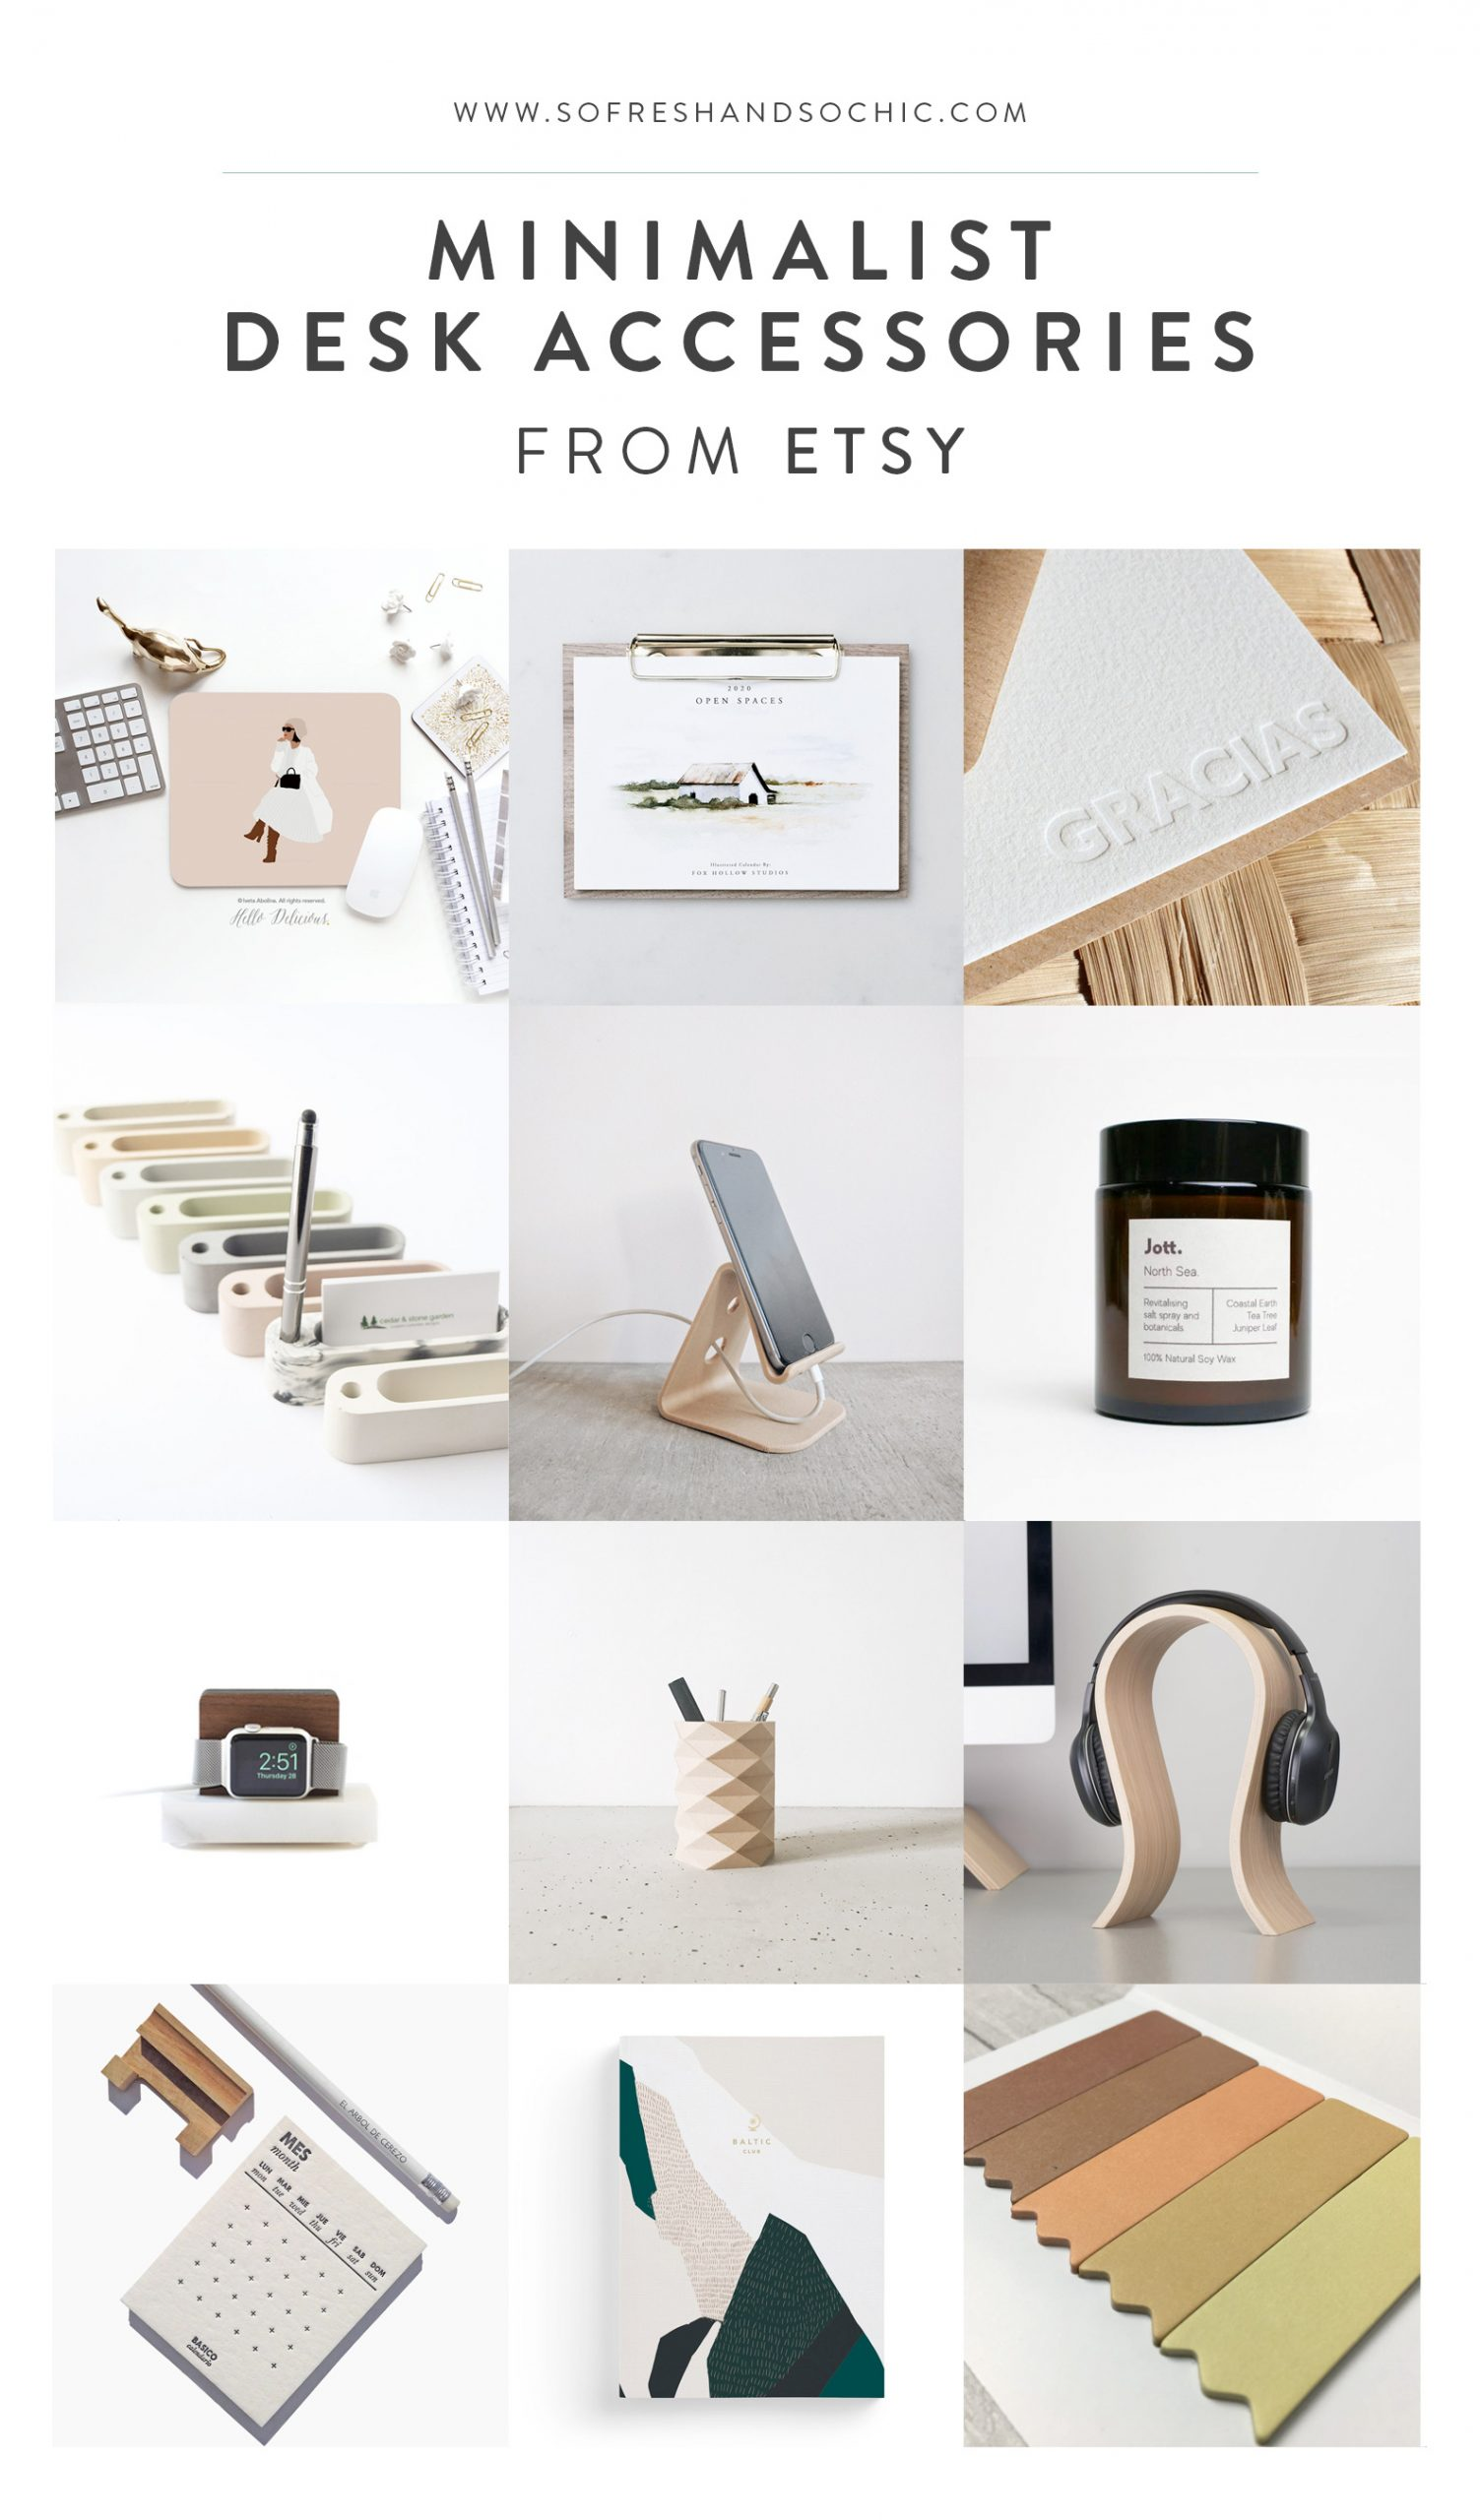 A Master List of 60+ Minimalist Desk Accessories from Etsy! // So Fresh & So Chic